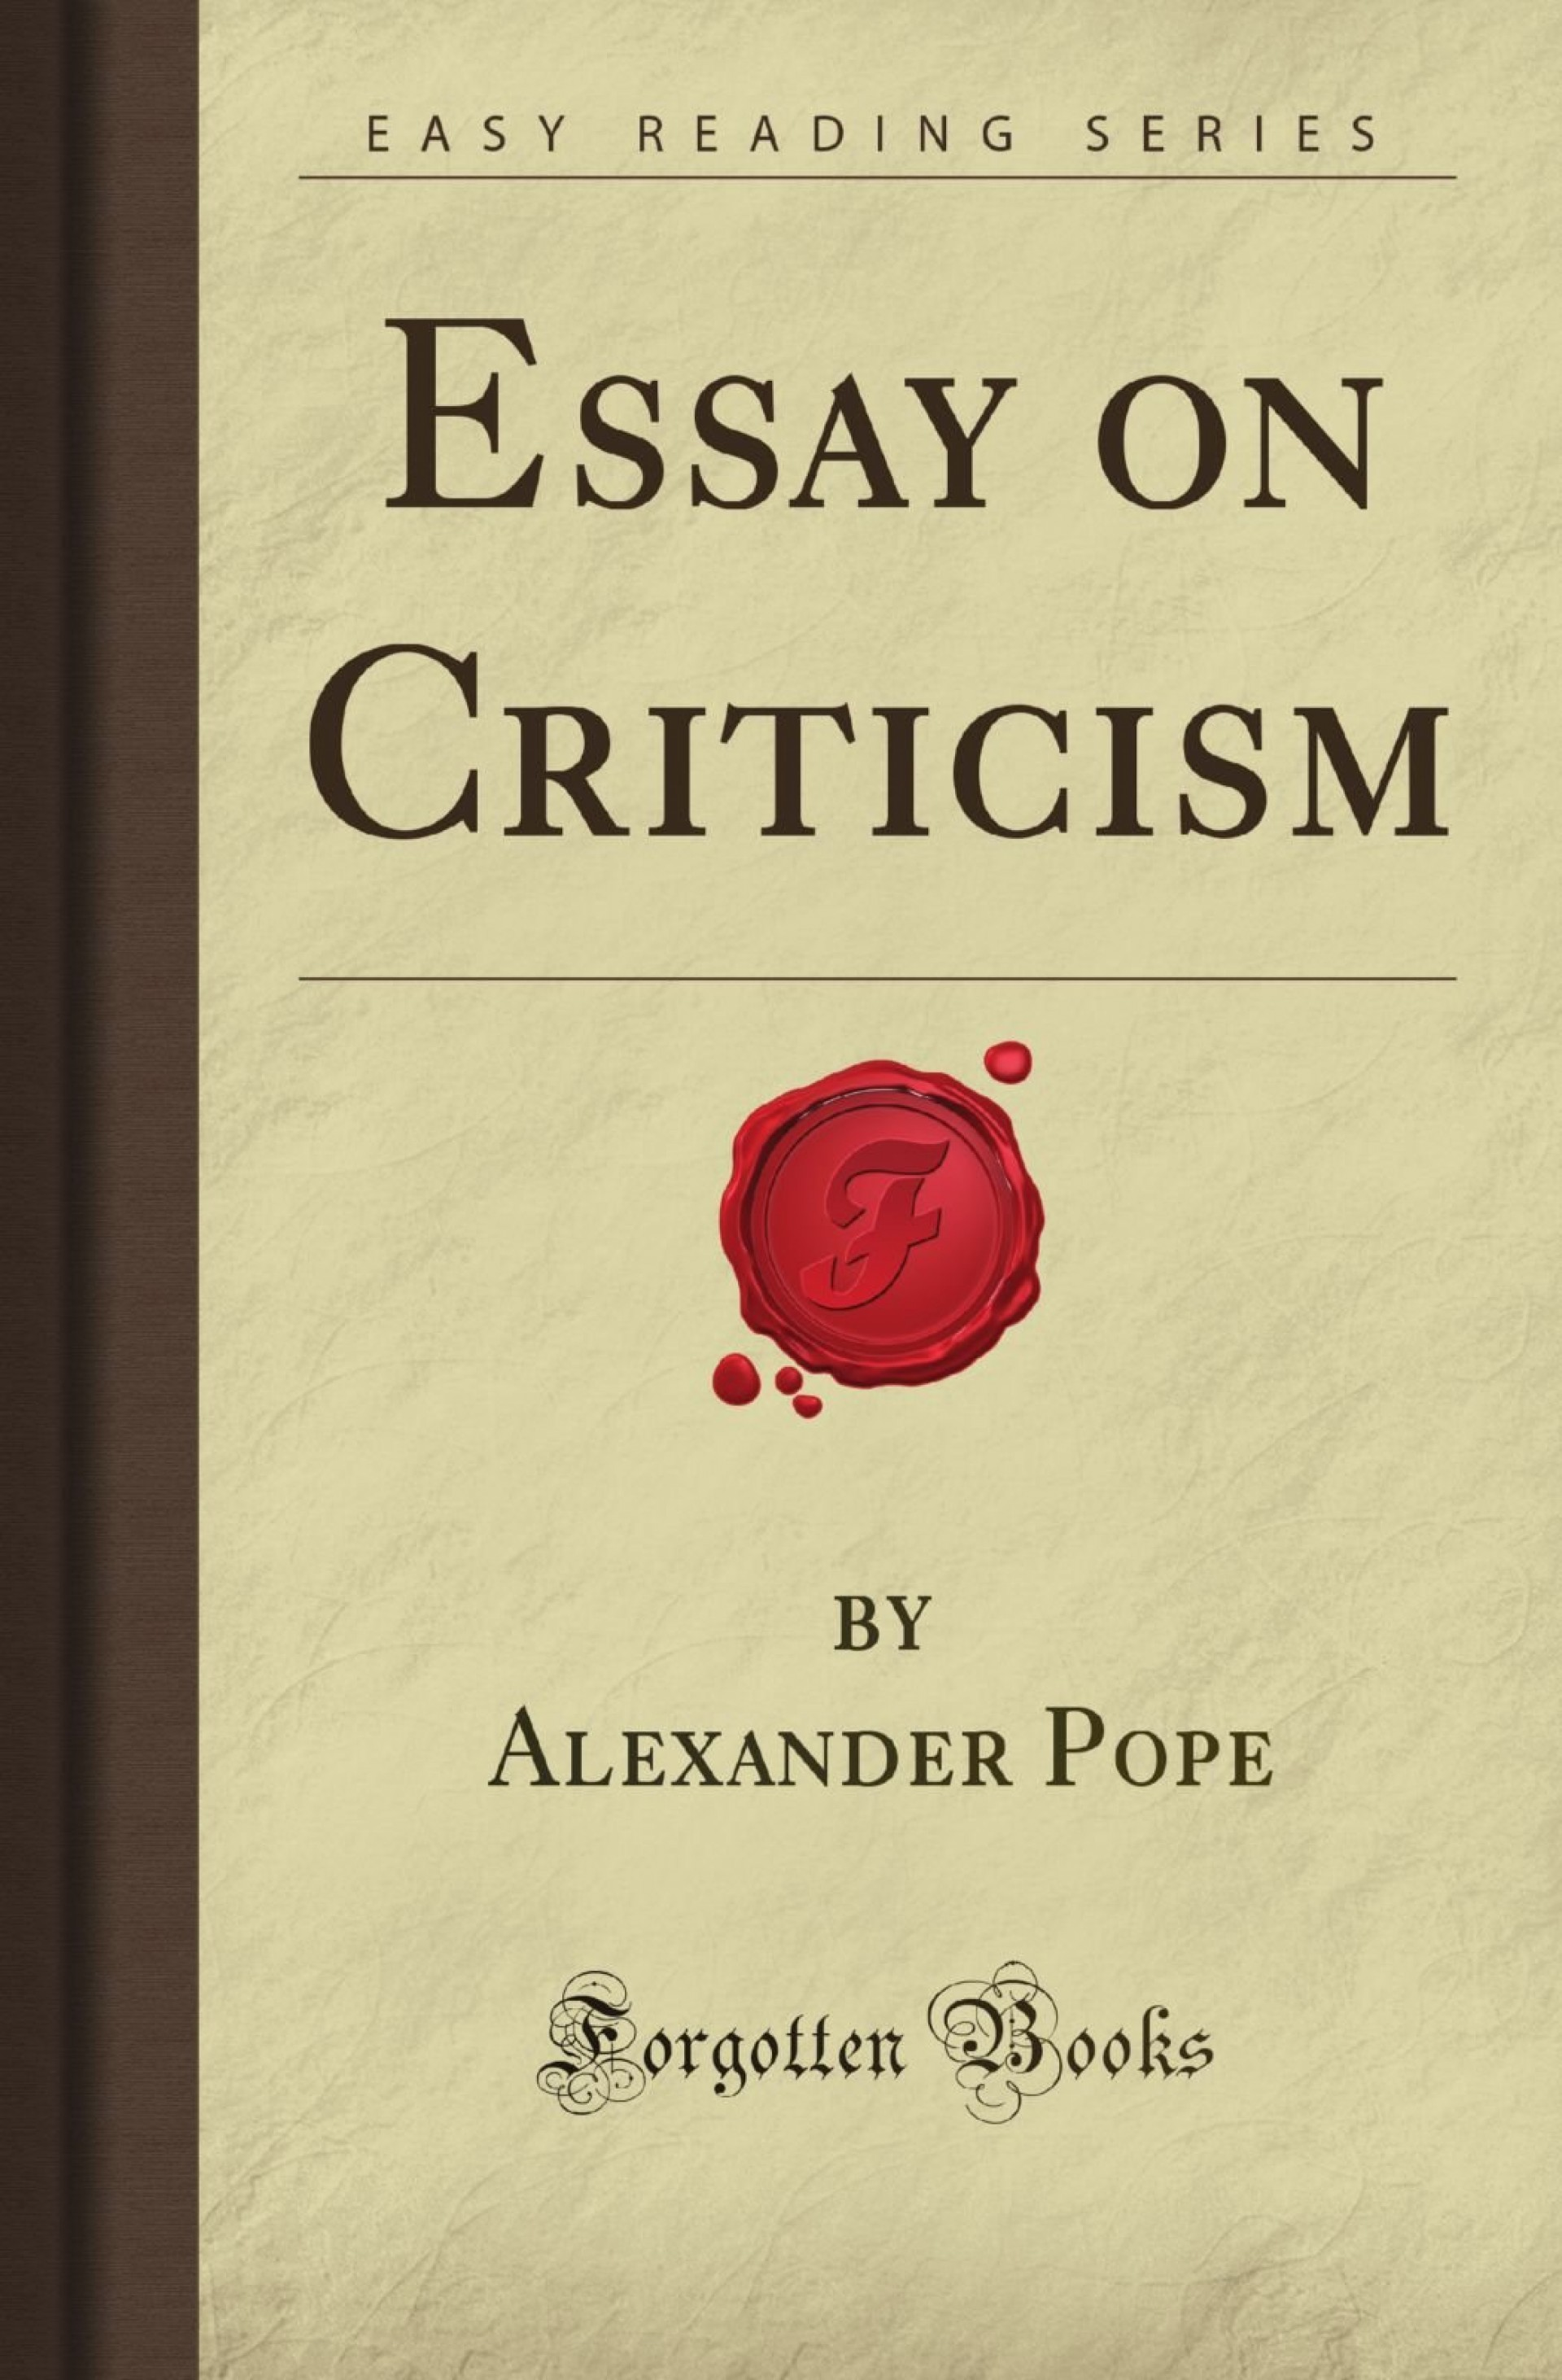 002 Essay On Criticism Example Singular An Part 1 Sparknotes 2 Analysis Summary Pdf 1920